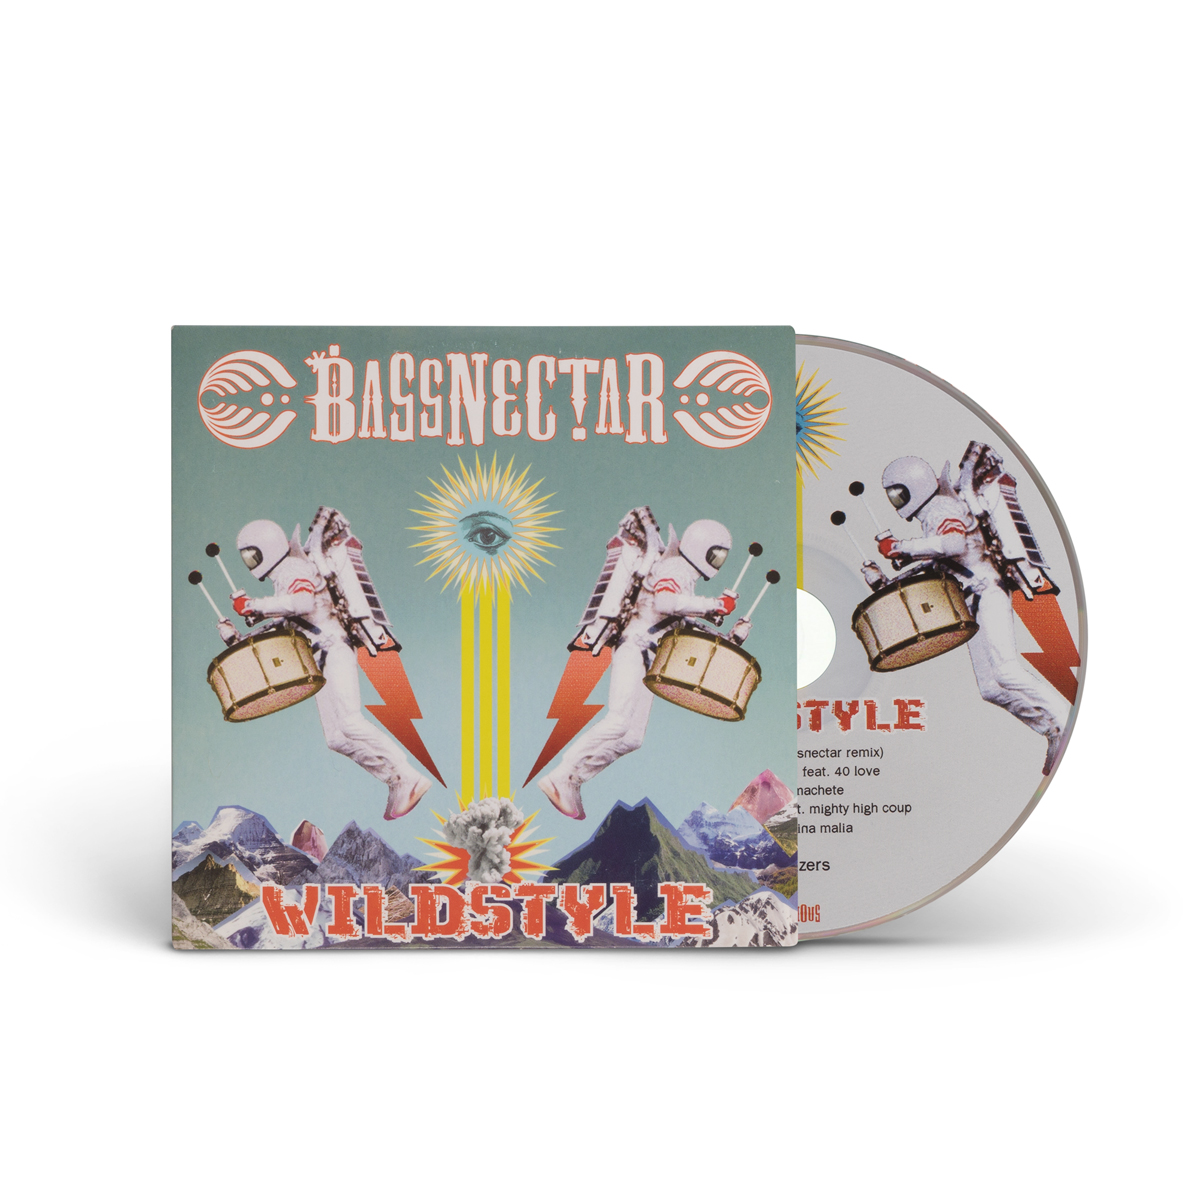 Bassnectar - Wildstyle CD